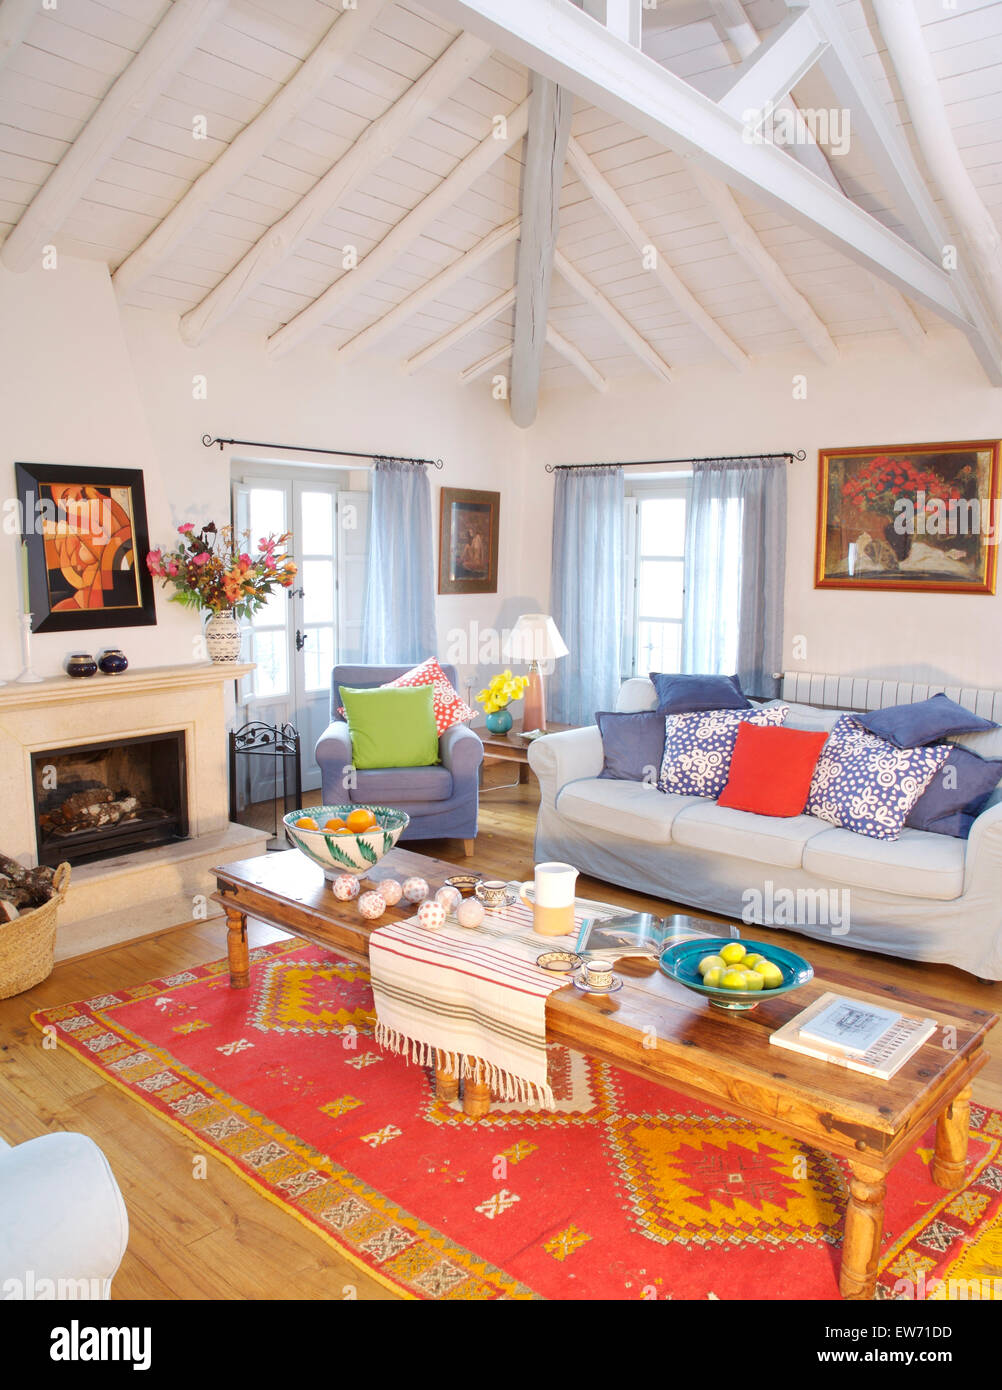 Rustic Wooden Coffee Table On Red Ethnic Rug In Spanish Country Living Room  With White Painted Beamed Ceiling